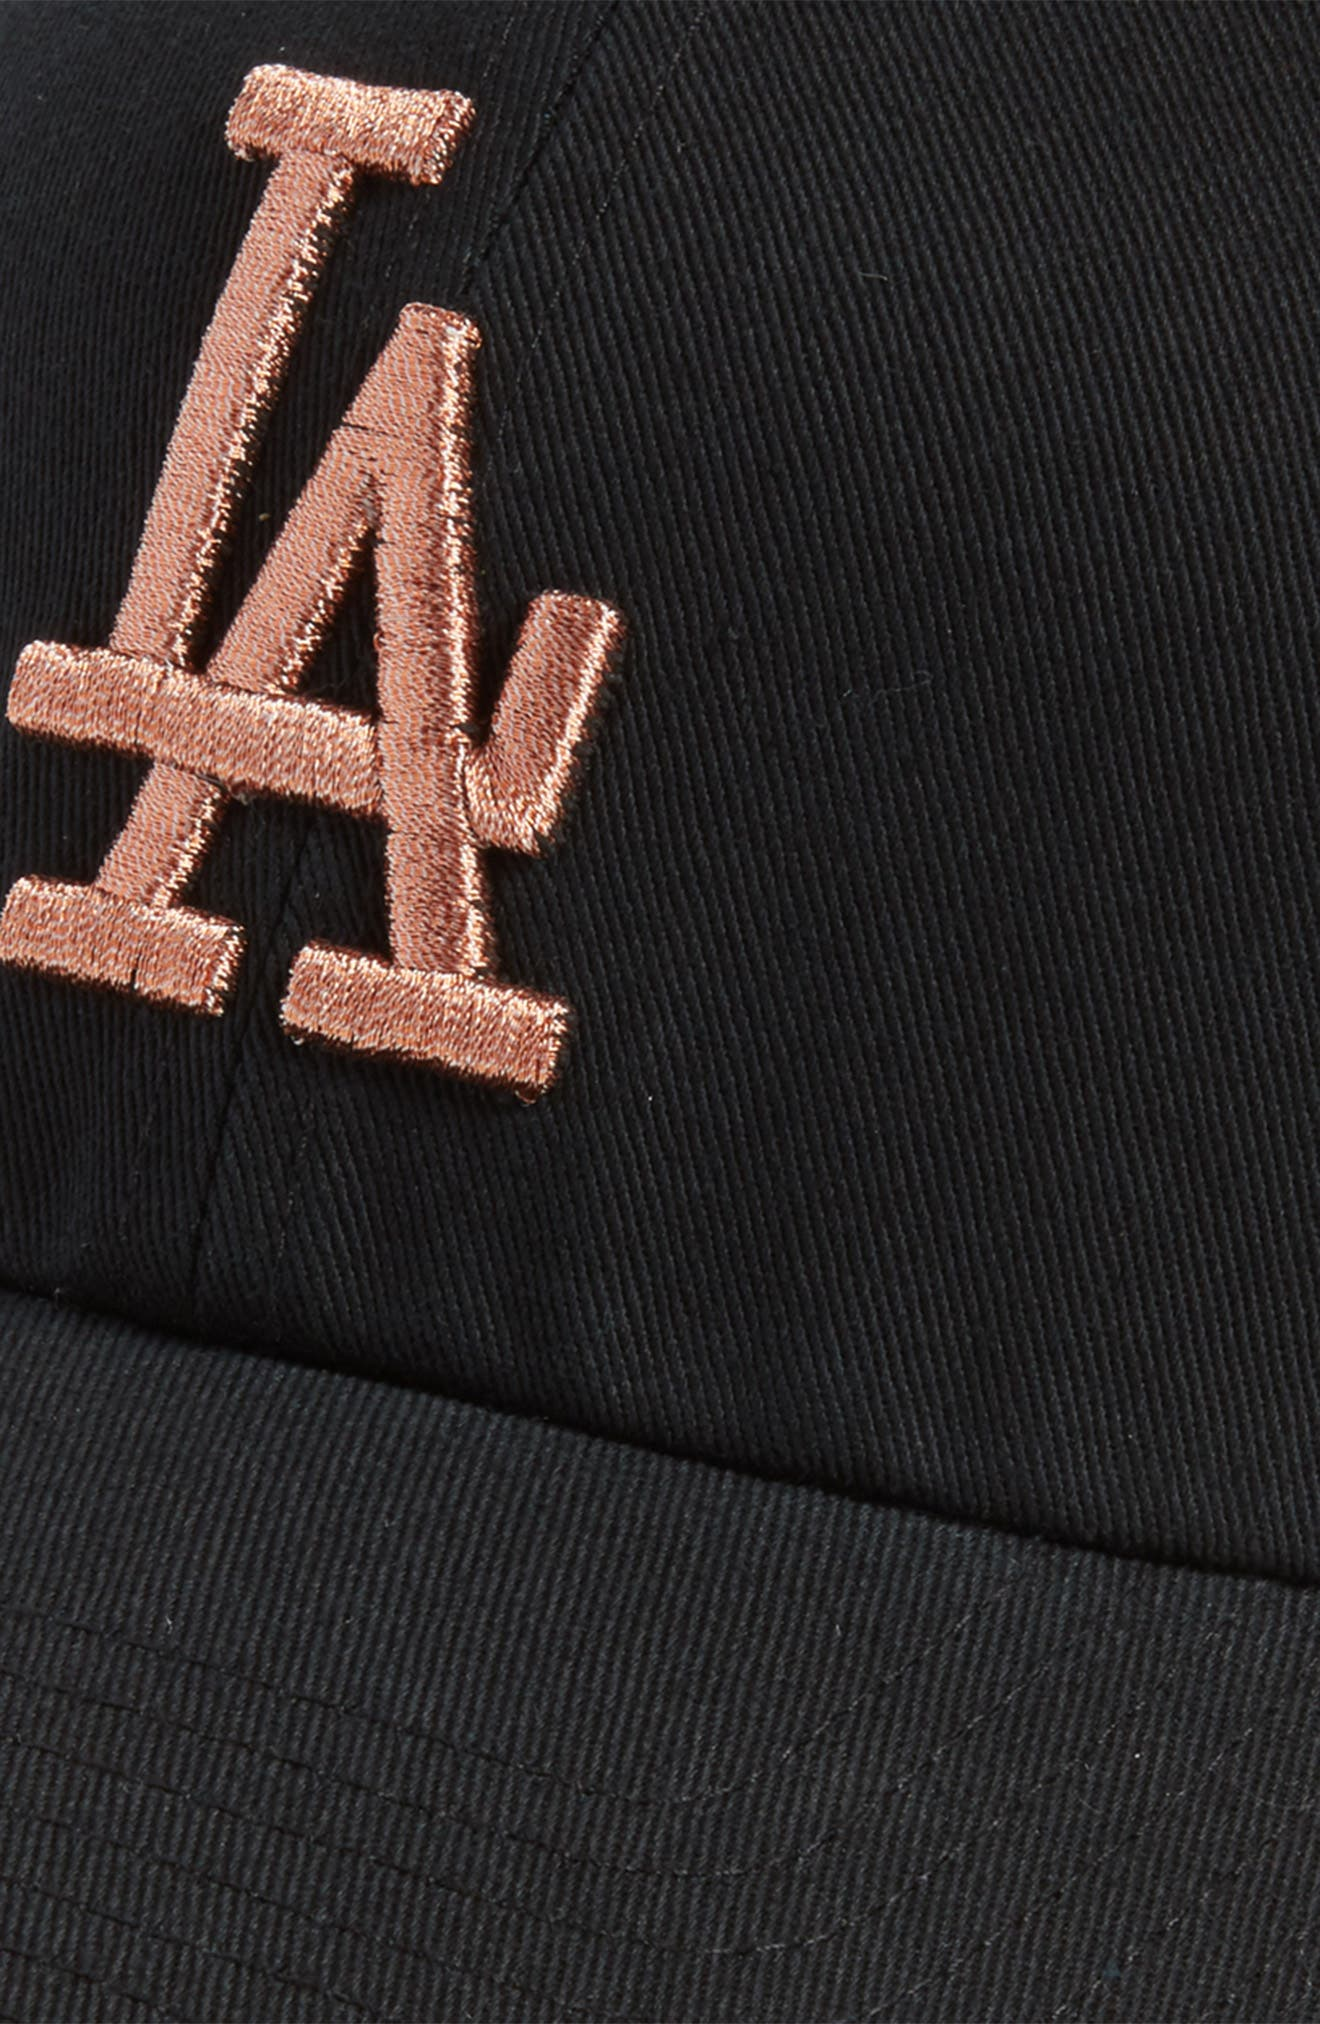 Los Angeles Dodgers Metallic Embroidery Cap,                             Alternate thumbnail 3, color,